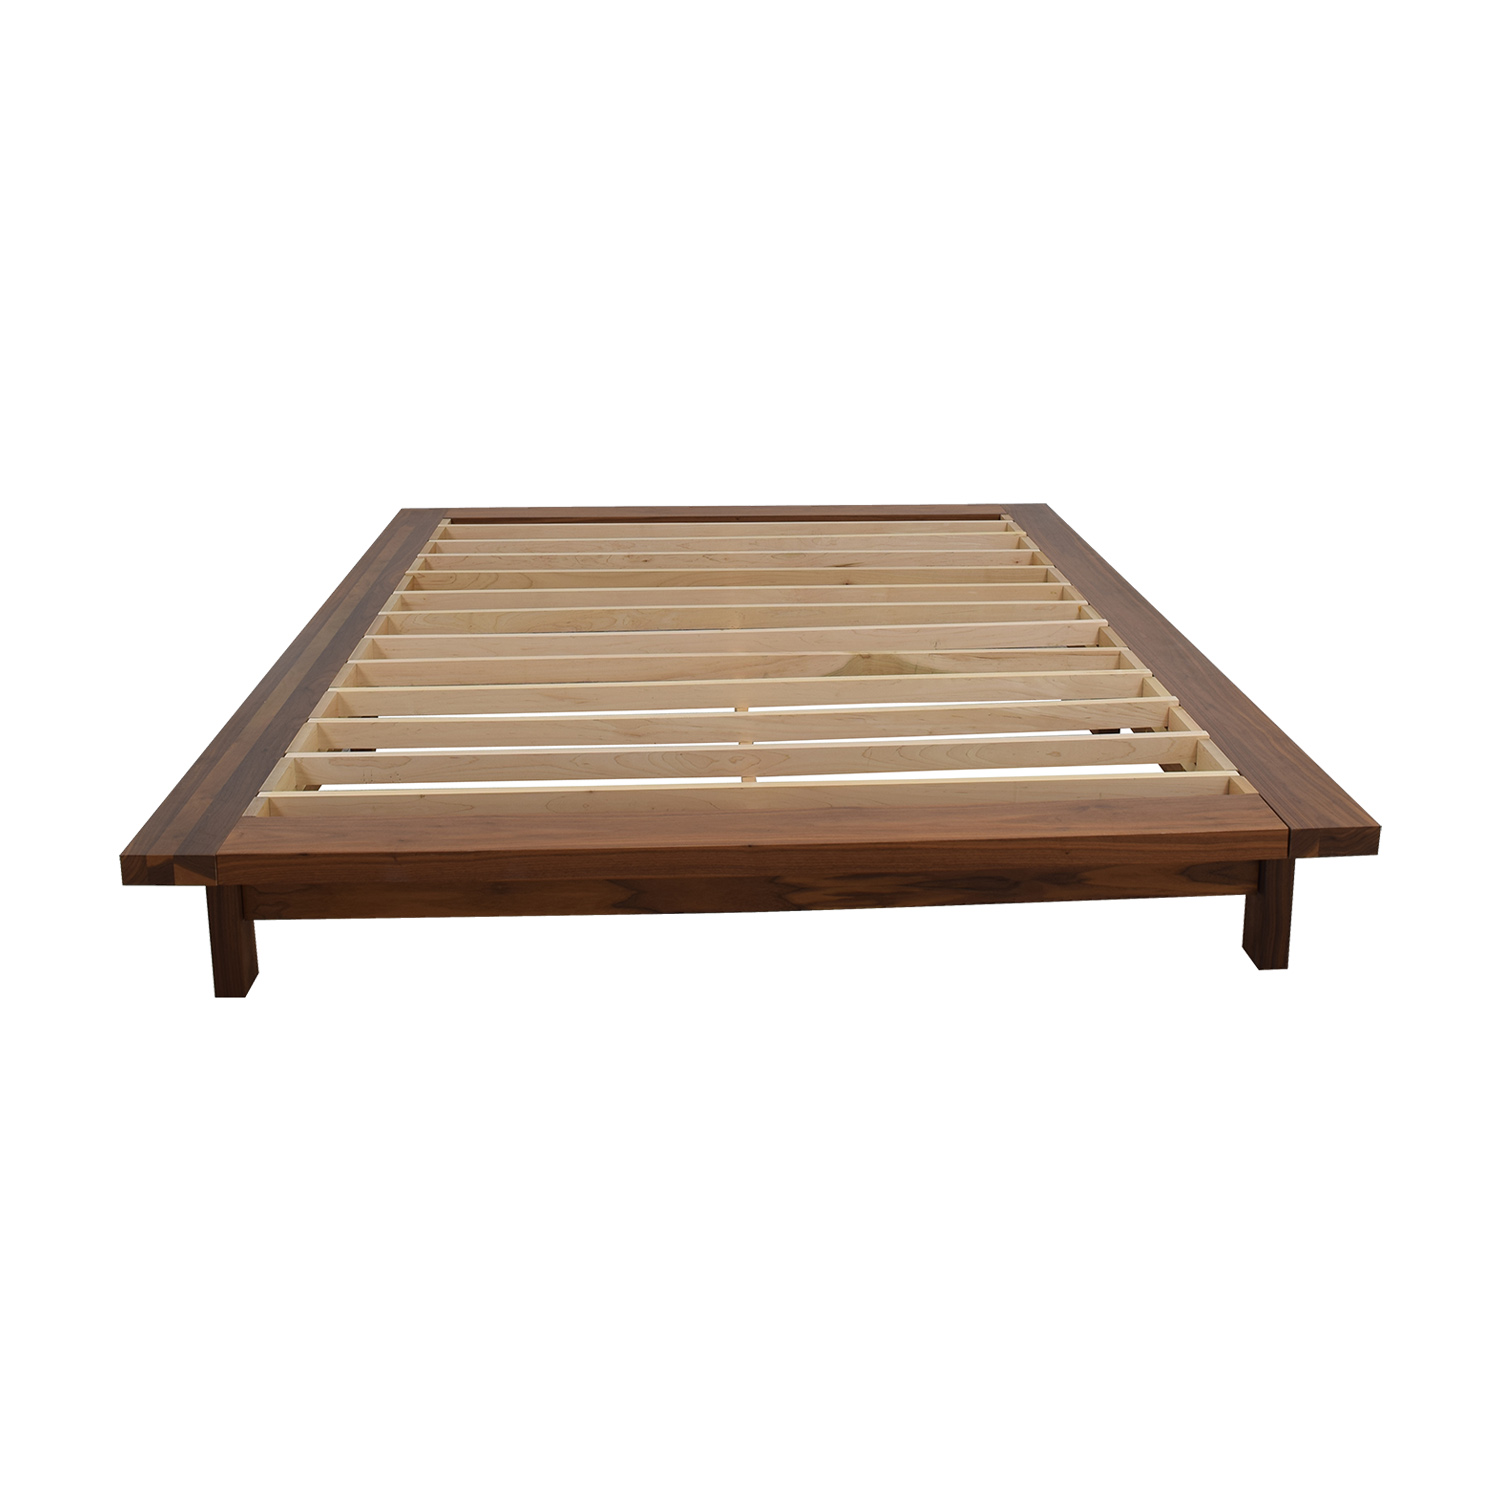 Room & Board Room & Board Campo Queen Walnut Platform Bed Frame discount